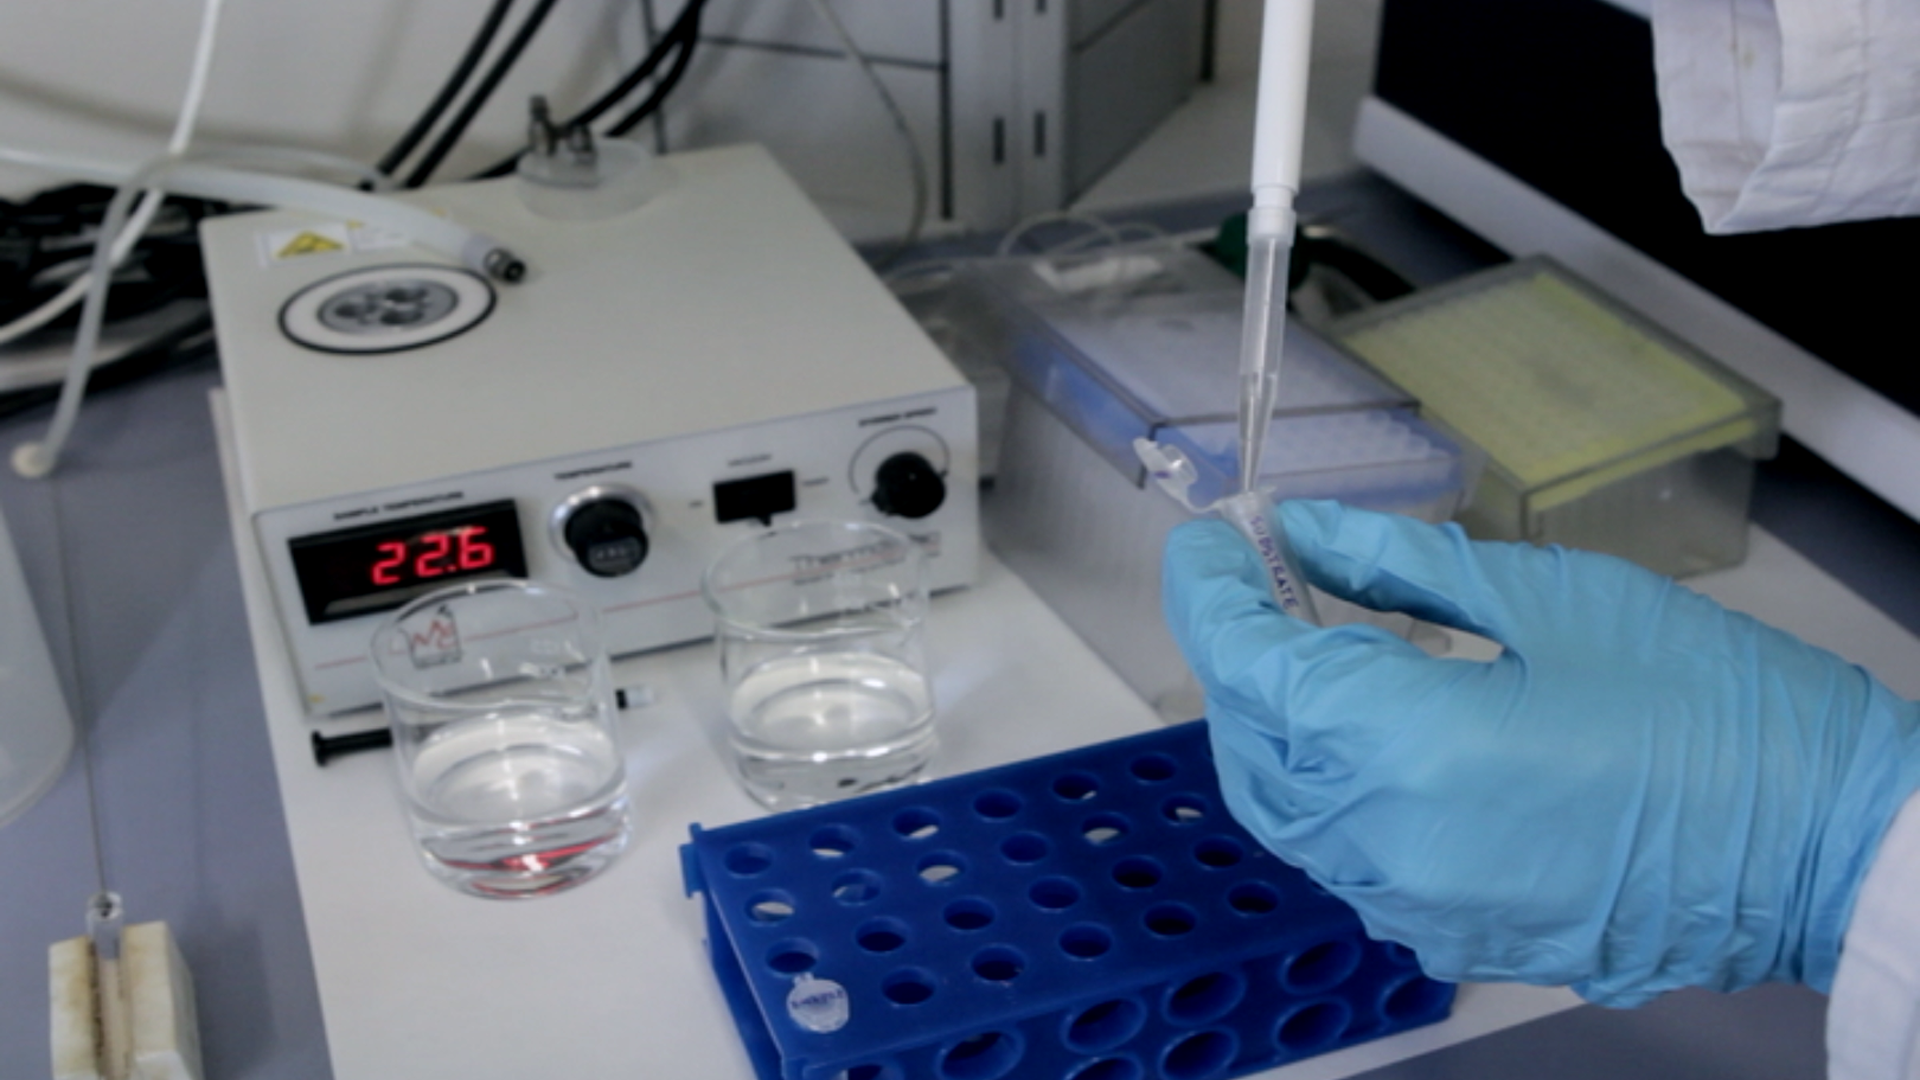 Hot Biological Catalysis: Isothermal Titration Calorimetry to Characterize Enzymatic Reactions